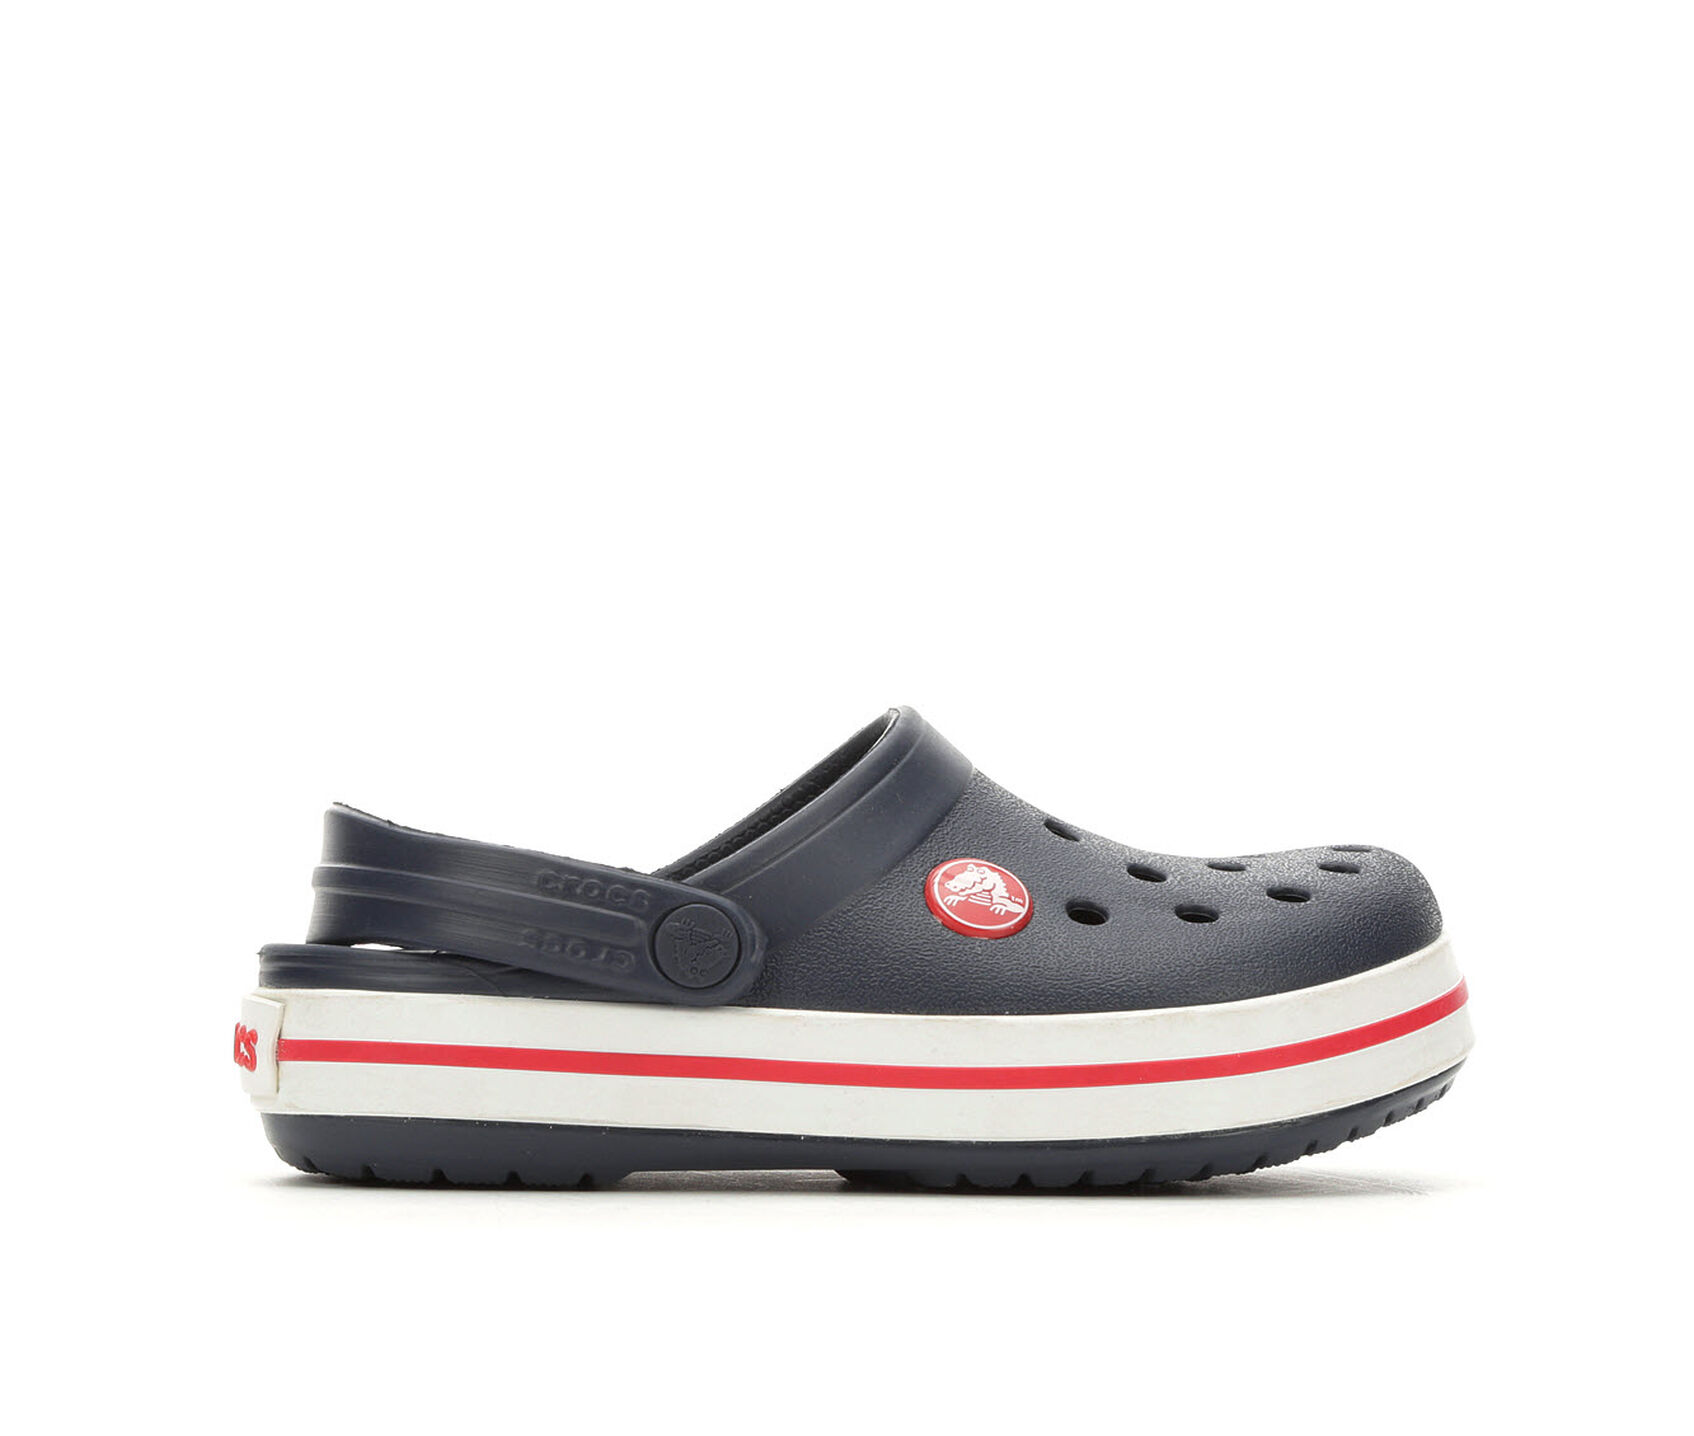 3424815f9ae0 ... Crocs Toddler  amp  Little Kid Crocband Clogs. Previous